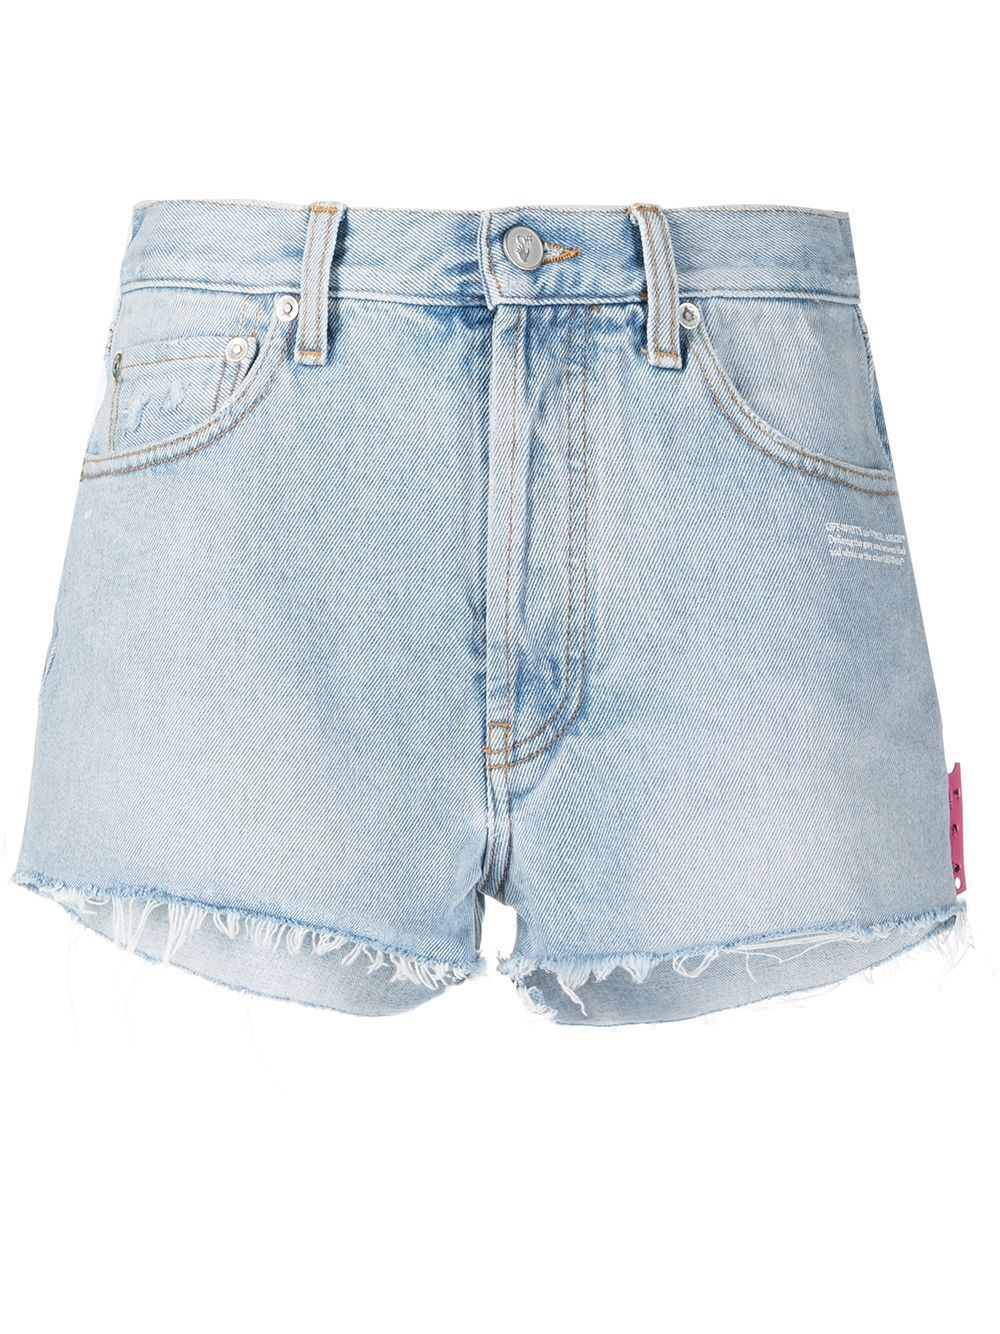 Off-White Women's Frayed Edge Denim Shorts - Maison De Fashion